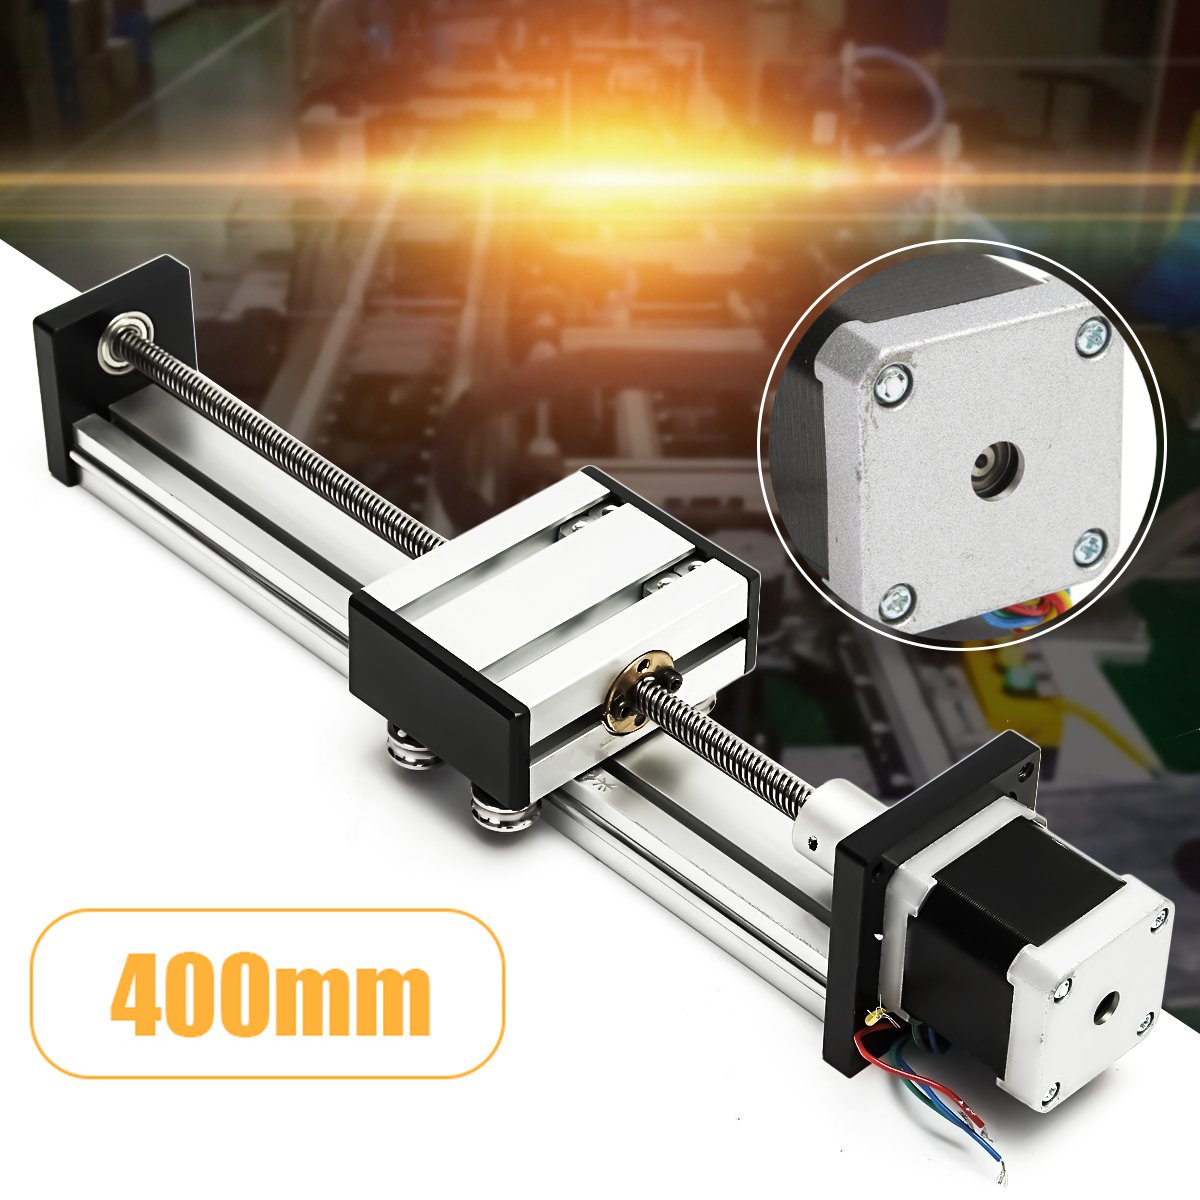 CNC Linear Motion Lead Screw Slide Stage 400mm Stroke Actuator 42 Stepper Motor For Engraving Machine new 500mm slide stroke cnc linear motion lead ball screw slide stage stroke 42 motor actuator stepper for engraving machine